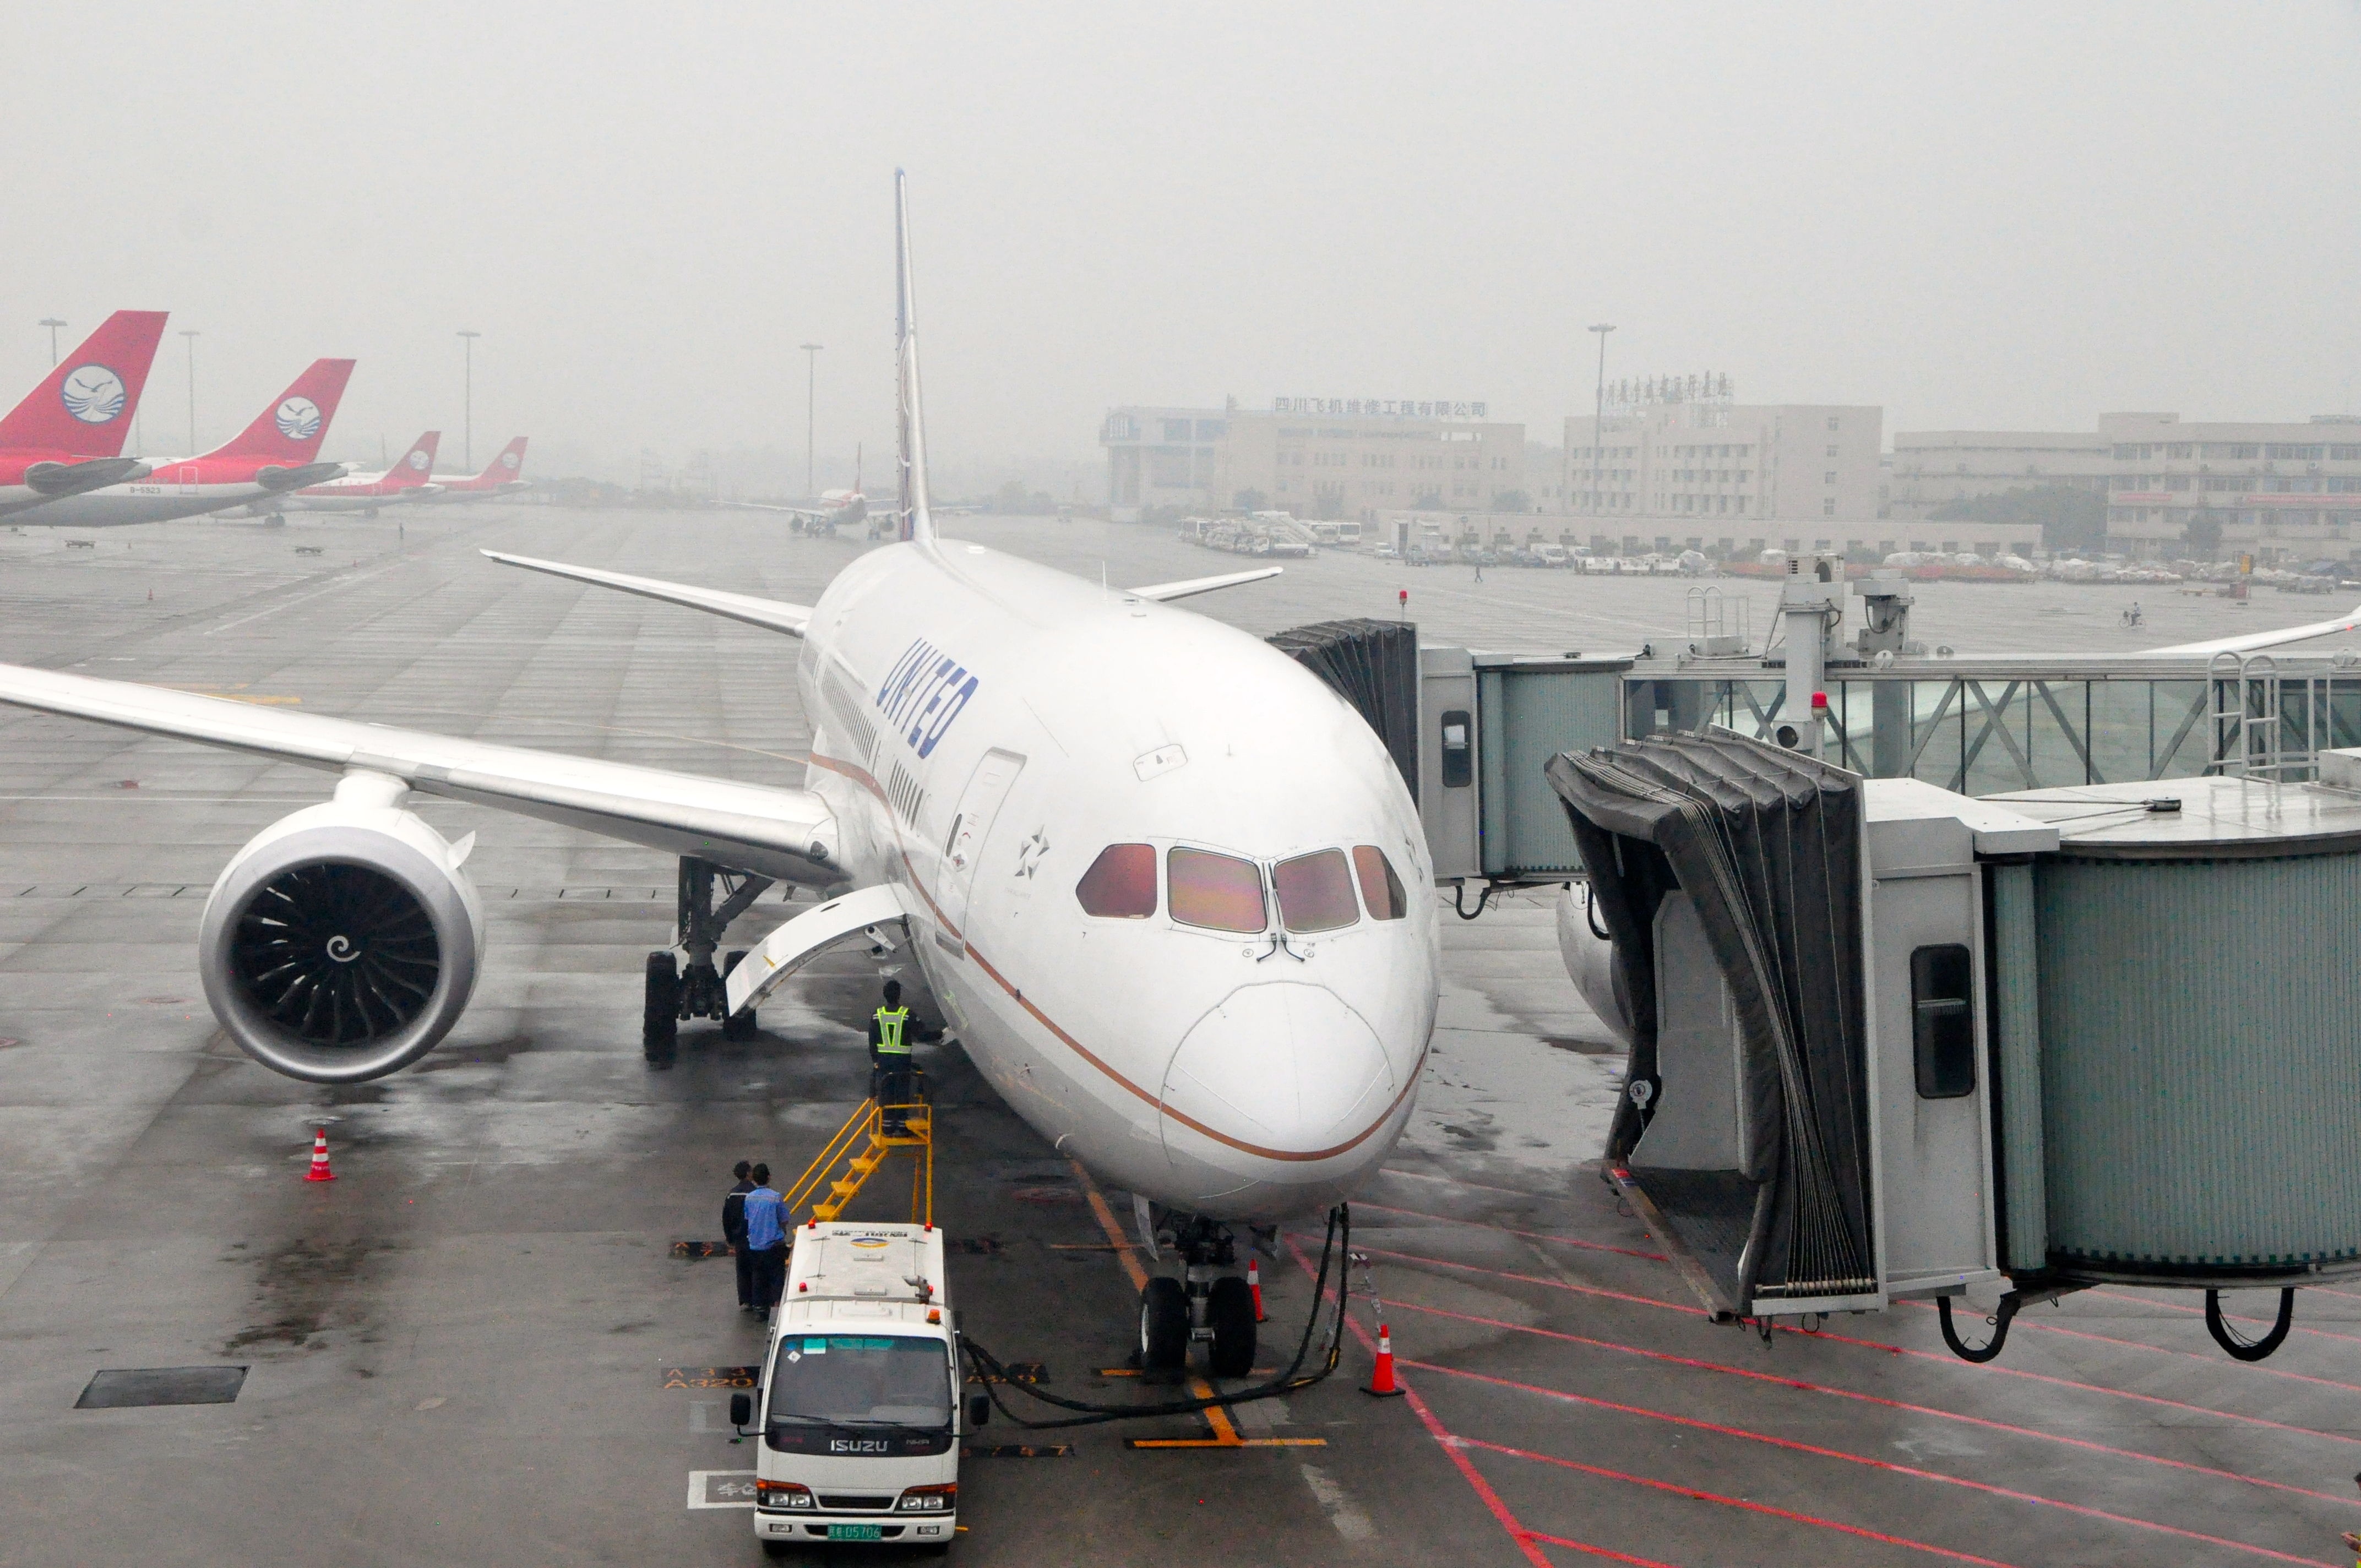 United's Dreamliner at the gate in Chengdu